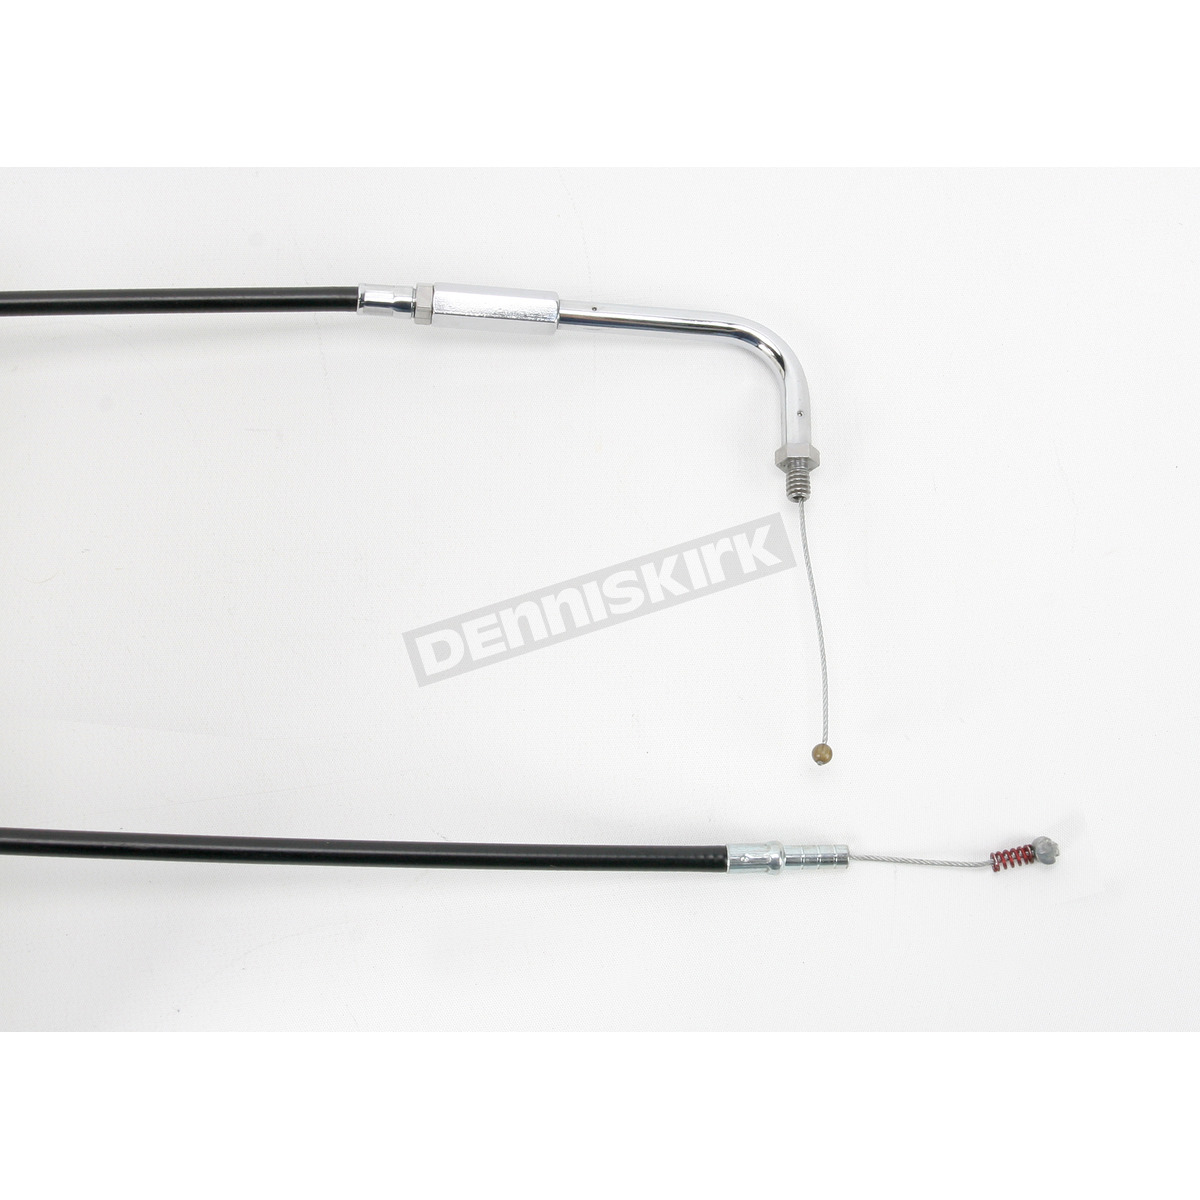 1994-1995 Harley Heritage Softail Special FLSTN Vinyl Idle Cable +9.0 in.